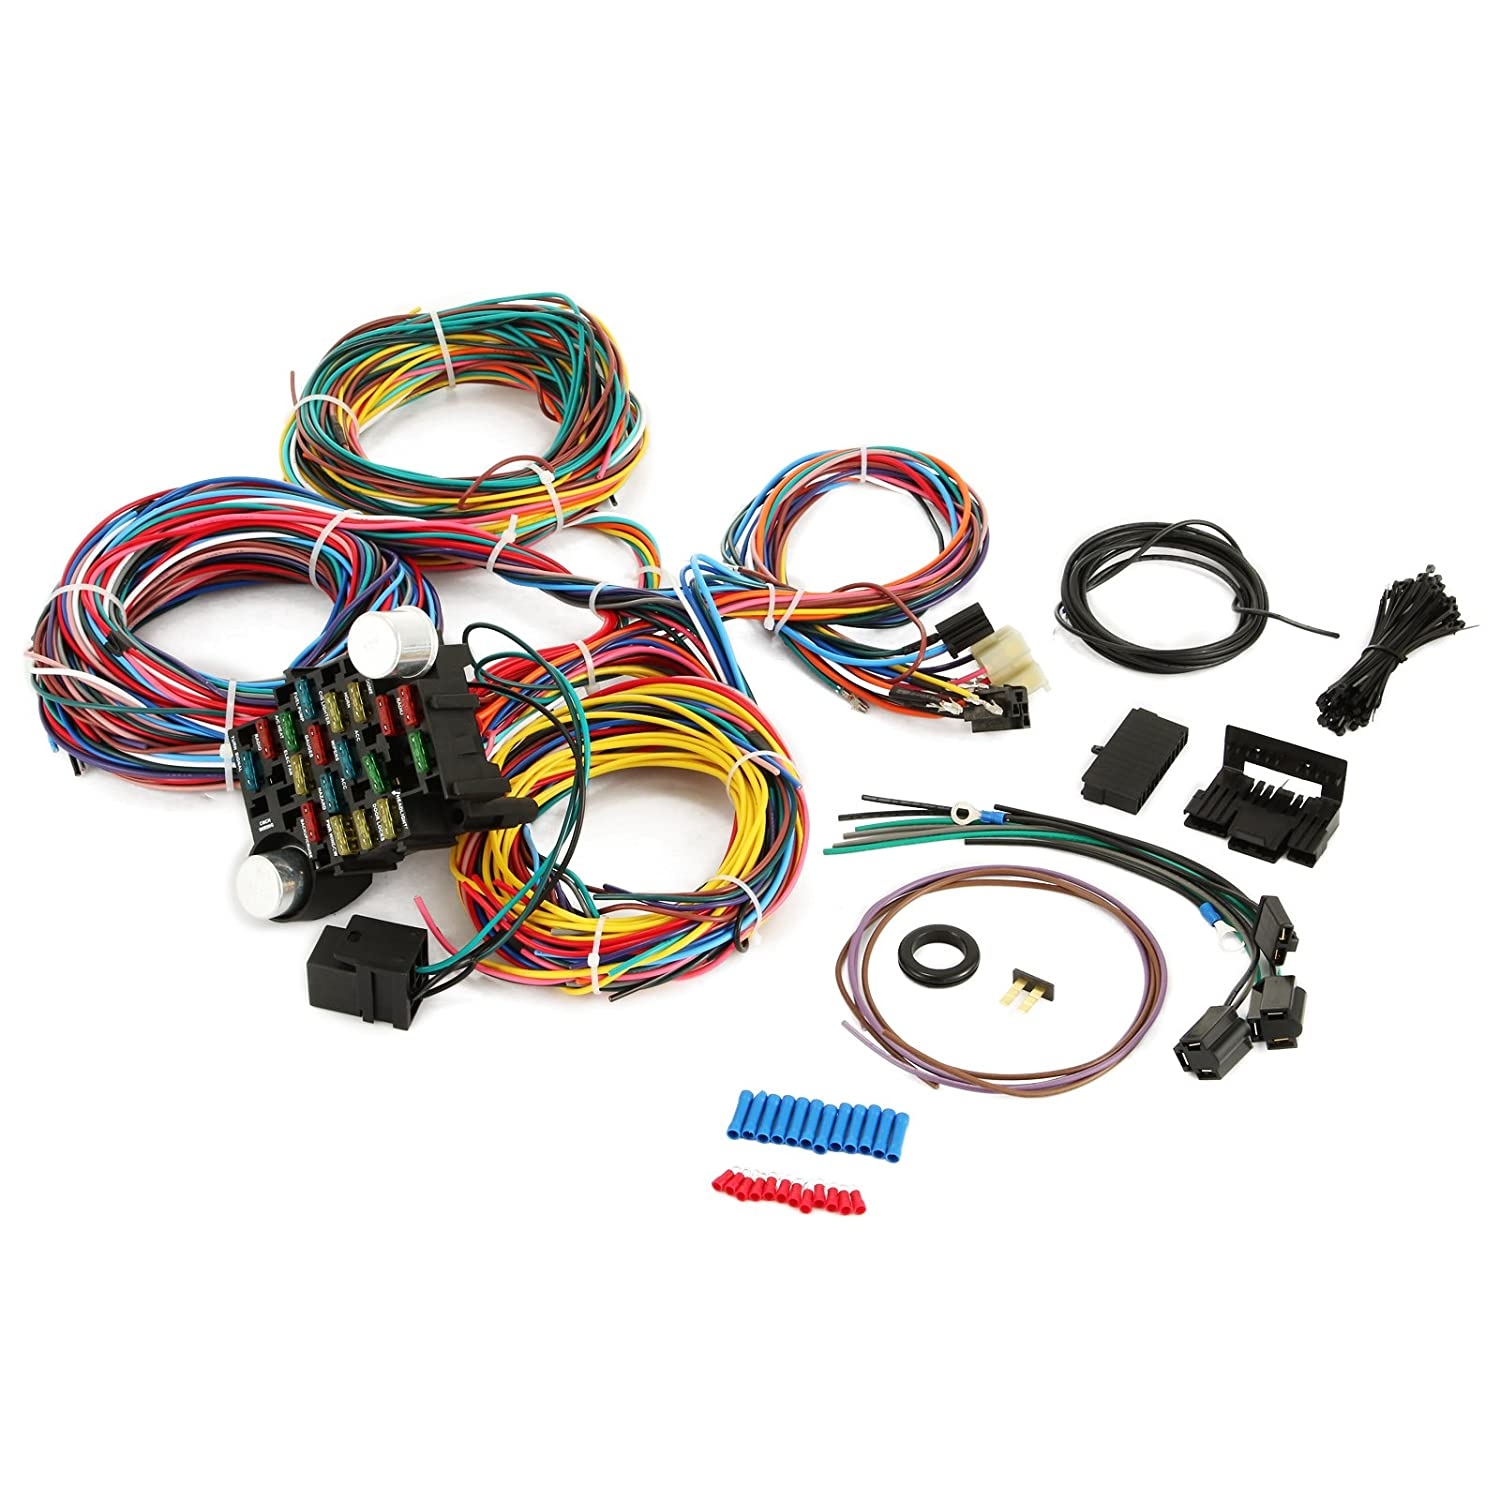 wrg 9367] 10150 painless wiring harness 10150 Painless Wiring Harness